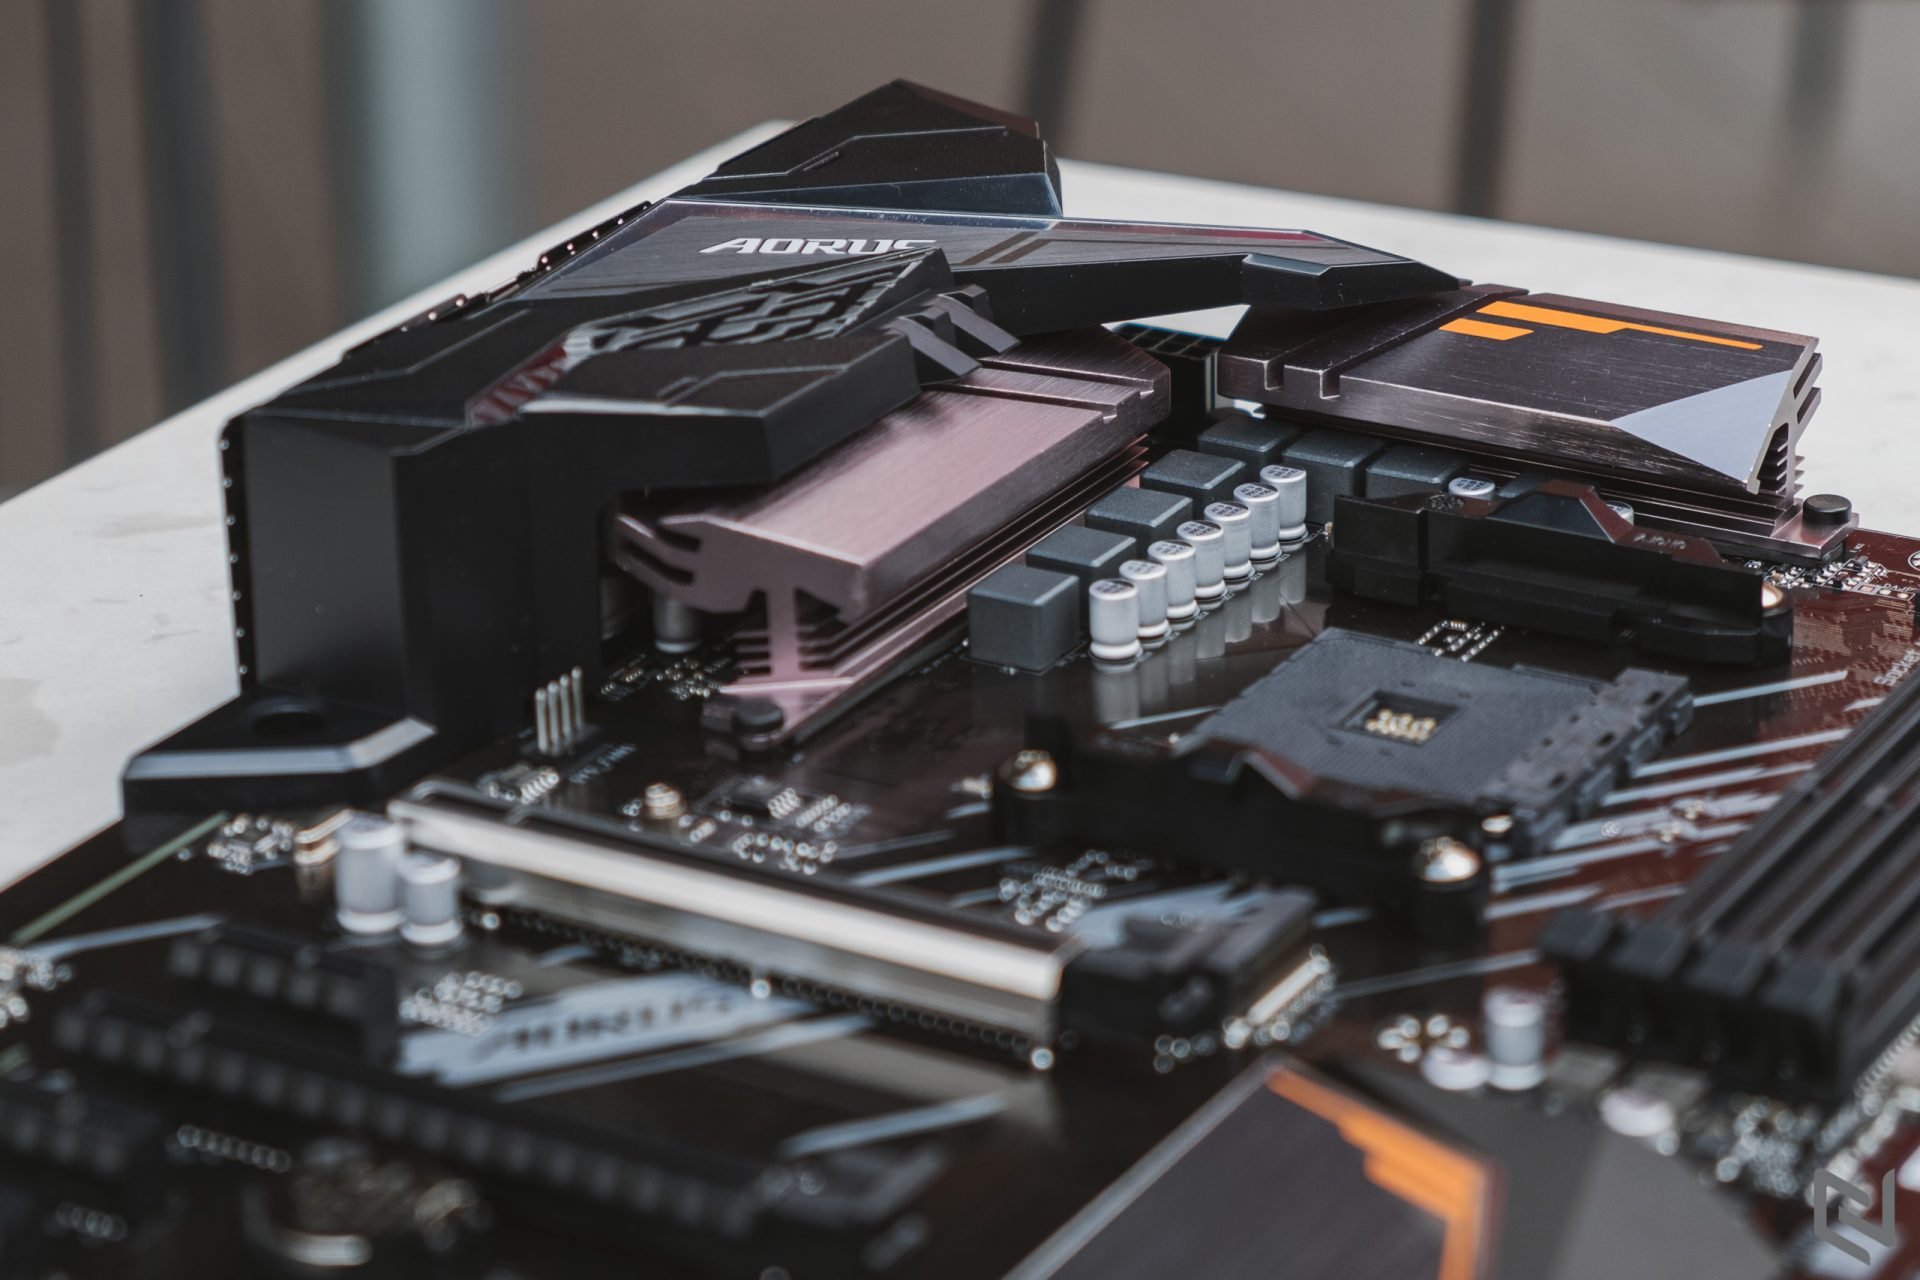 On hand Gigabyte A520 AORUS Elite motherboard: Supports AMD Ryzen 3, meeting all office needs of users